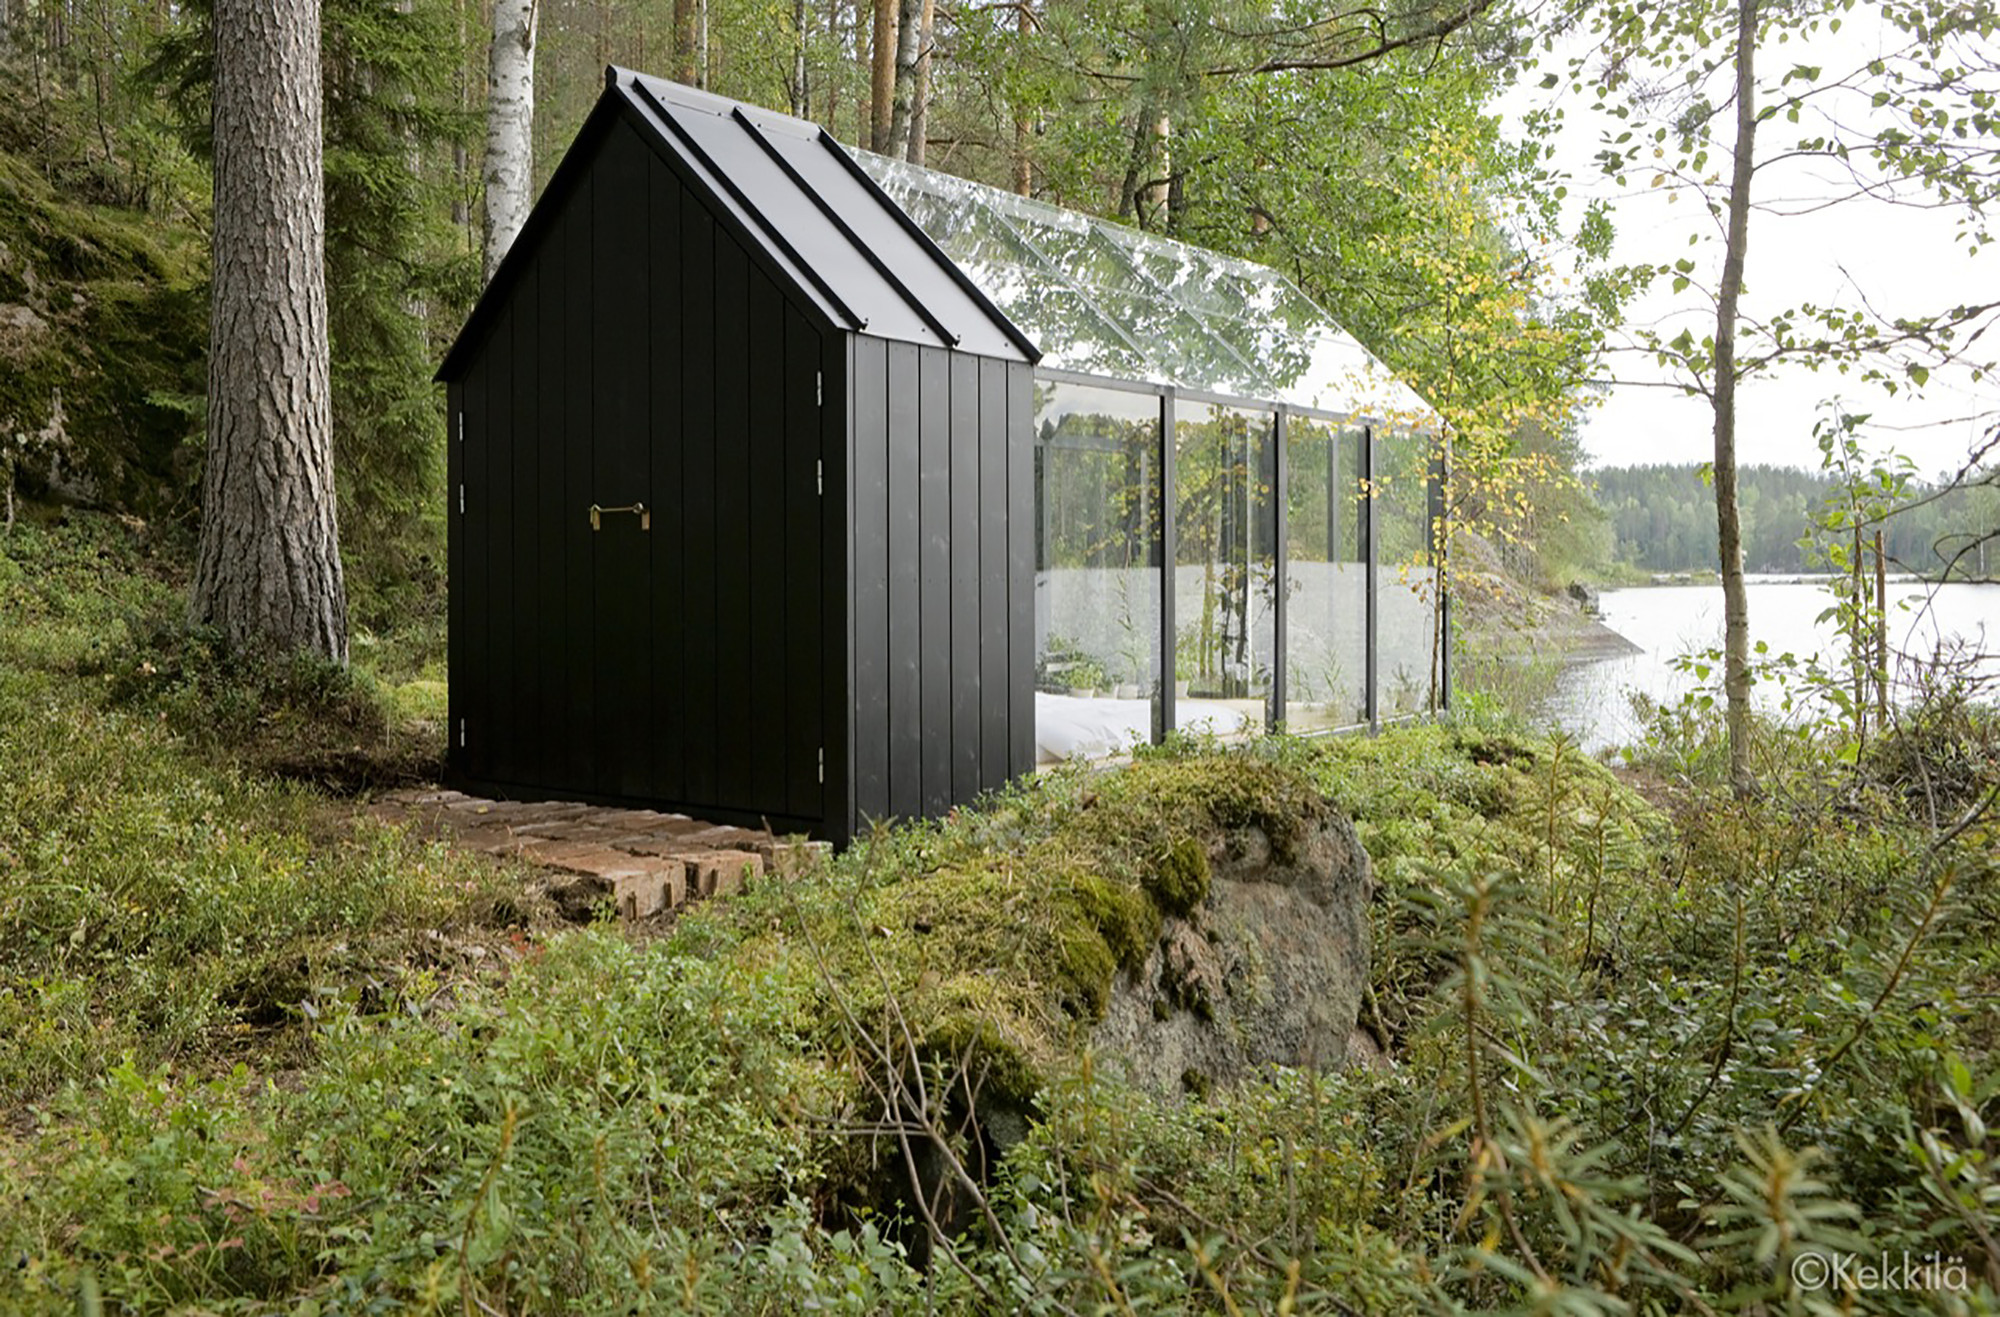 a unique combination of a traditional garden shed and a green house